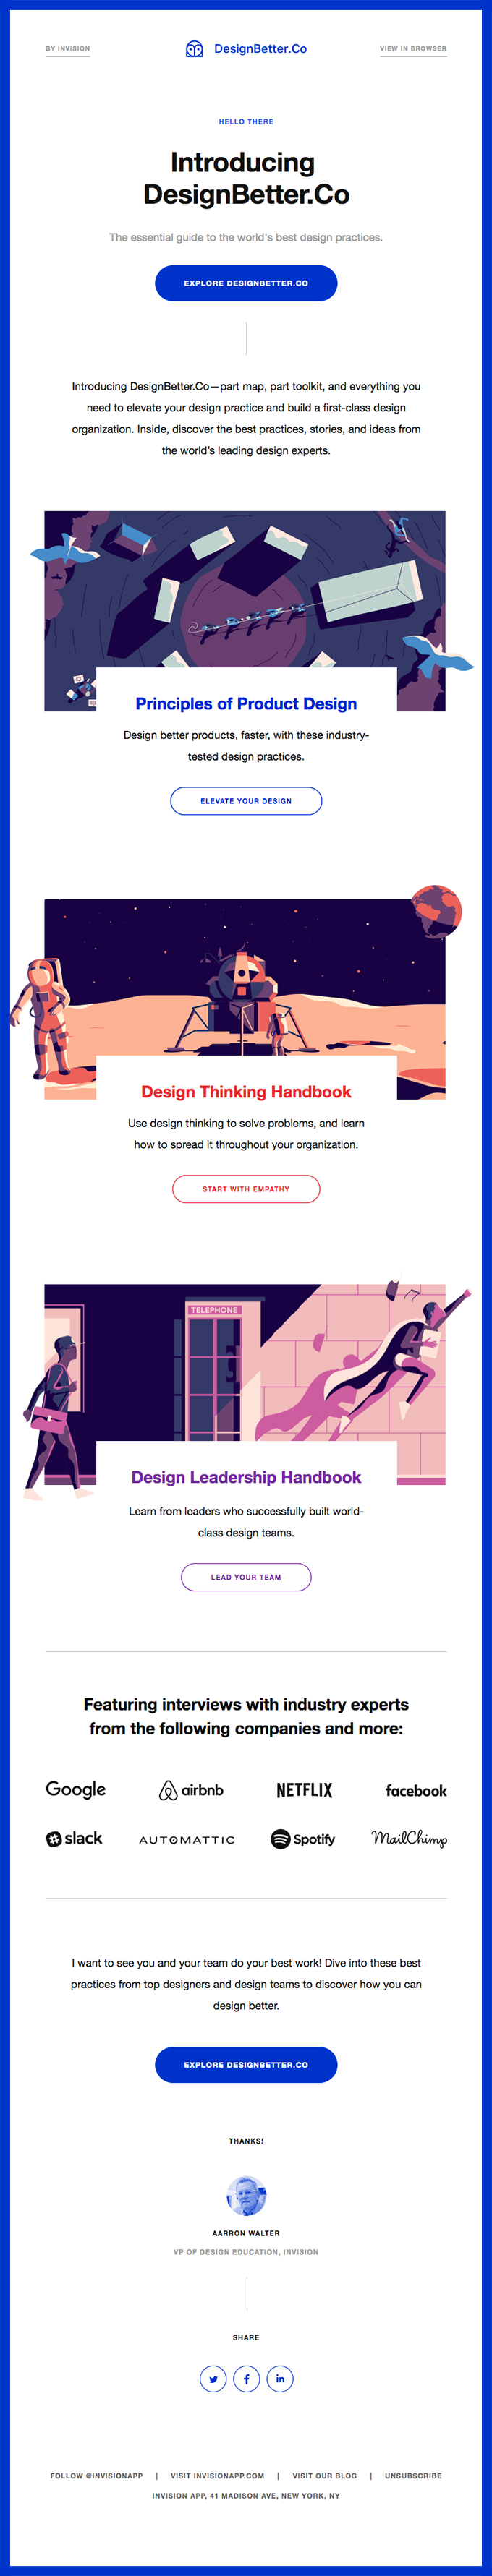 Introducing DesignBetter.Co—The essential guide to the world's best design practices